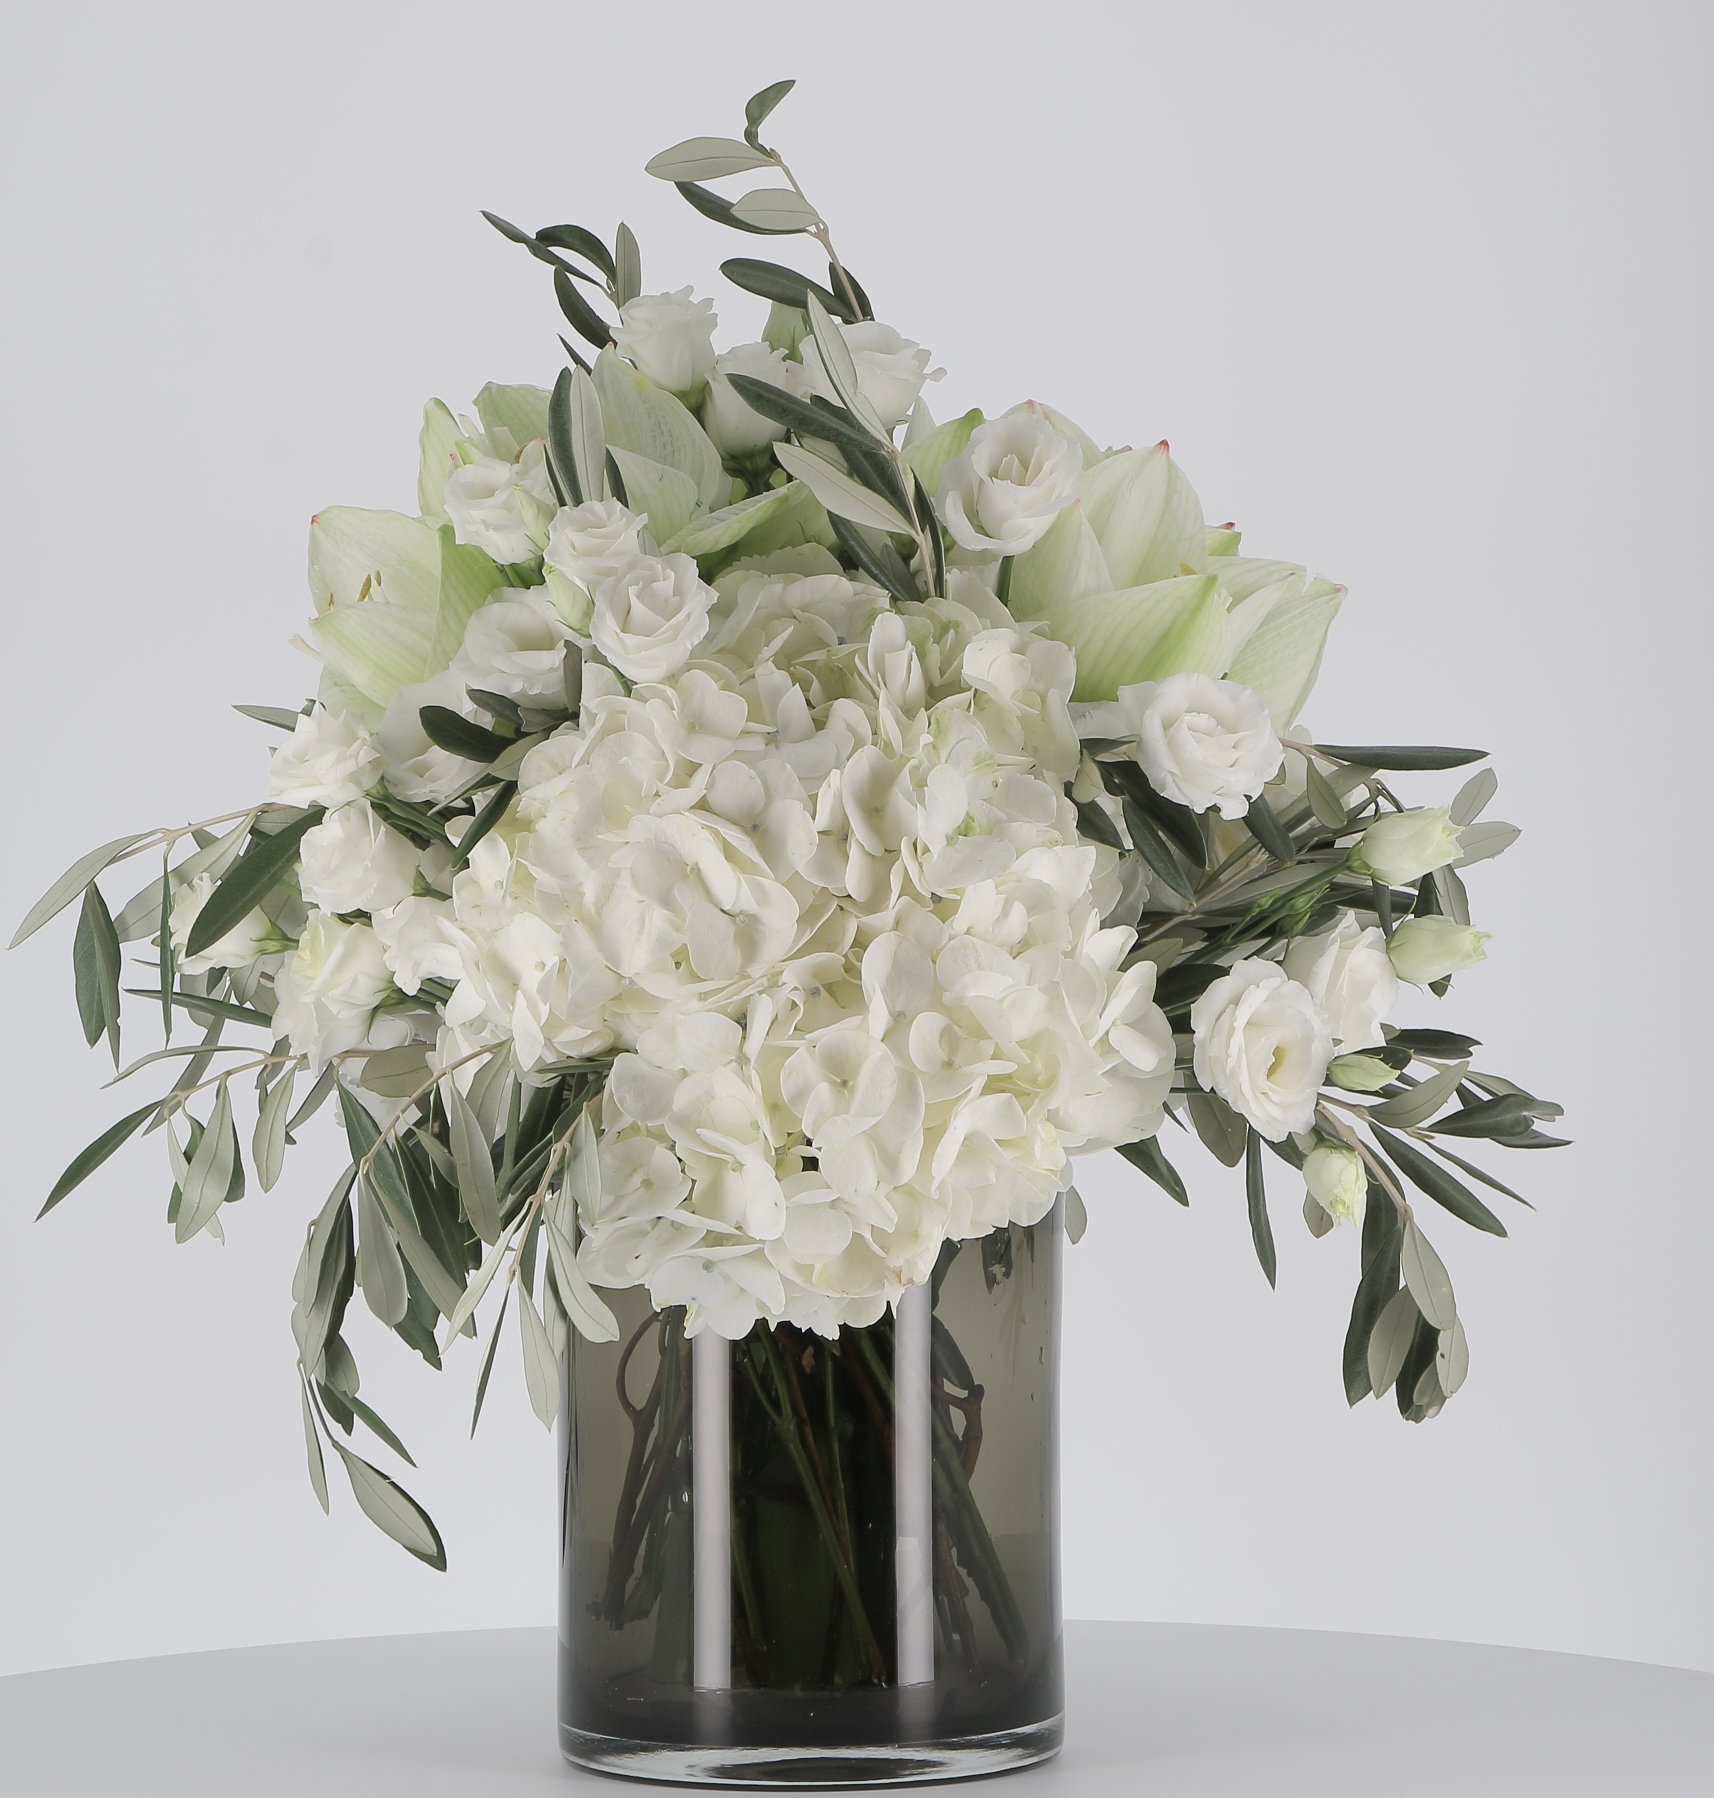 Flower bouquet example L1